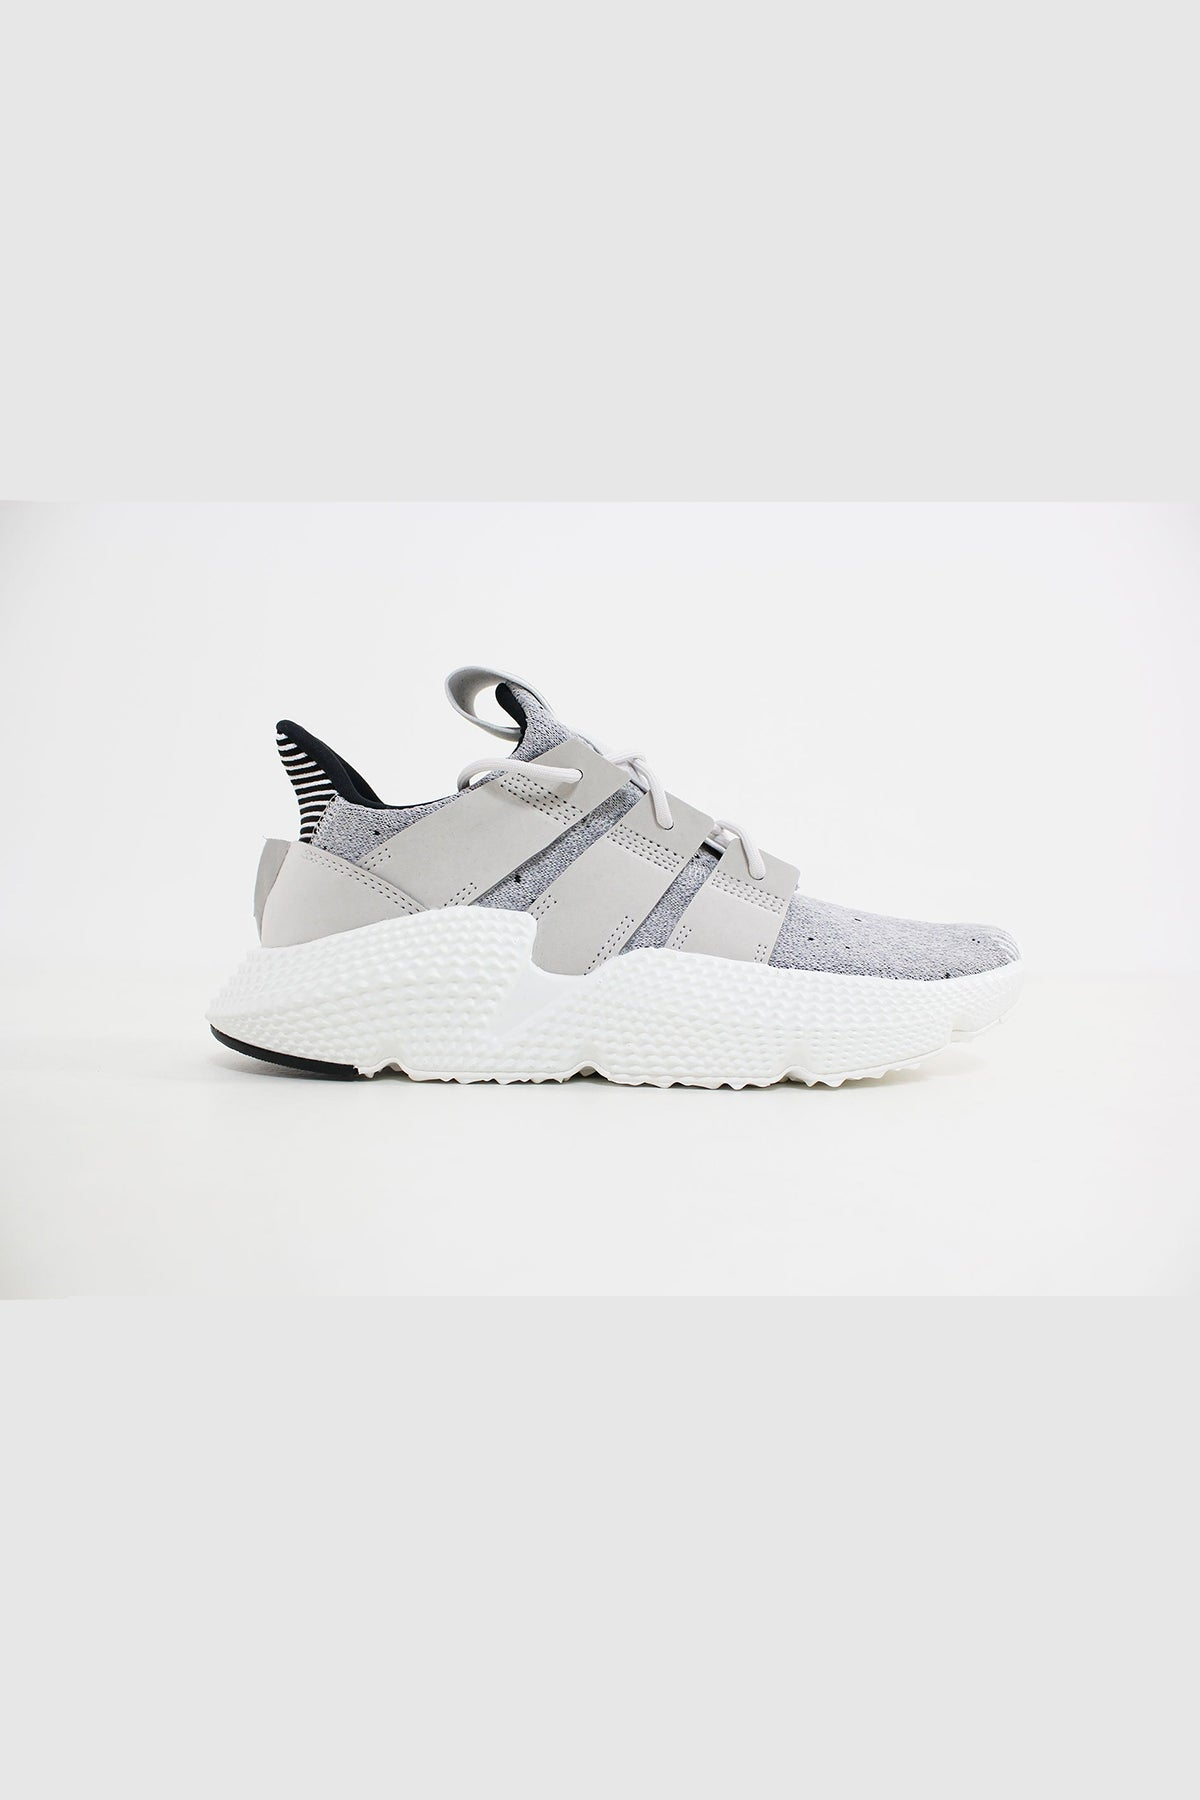 80afe12a94d016 Adidas - Prophere (Greone Greone CBlack) B37182